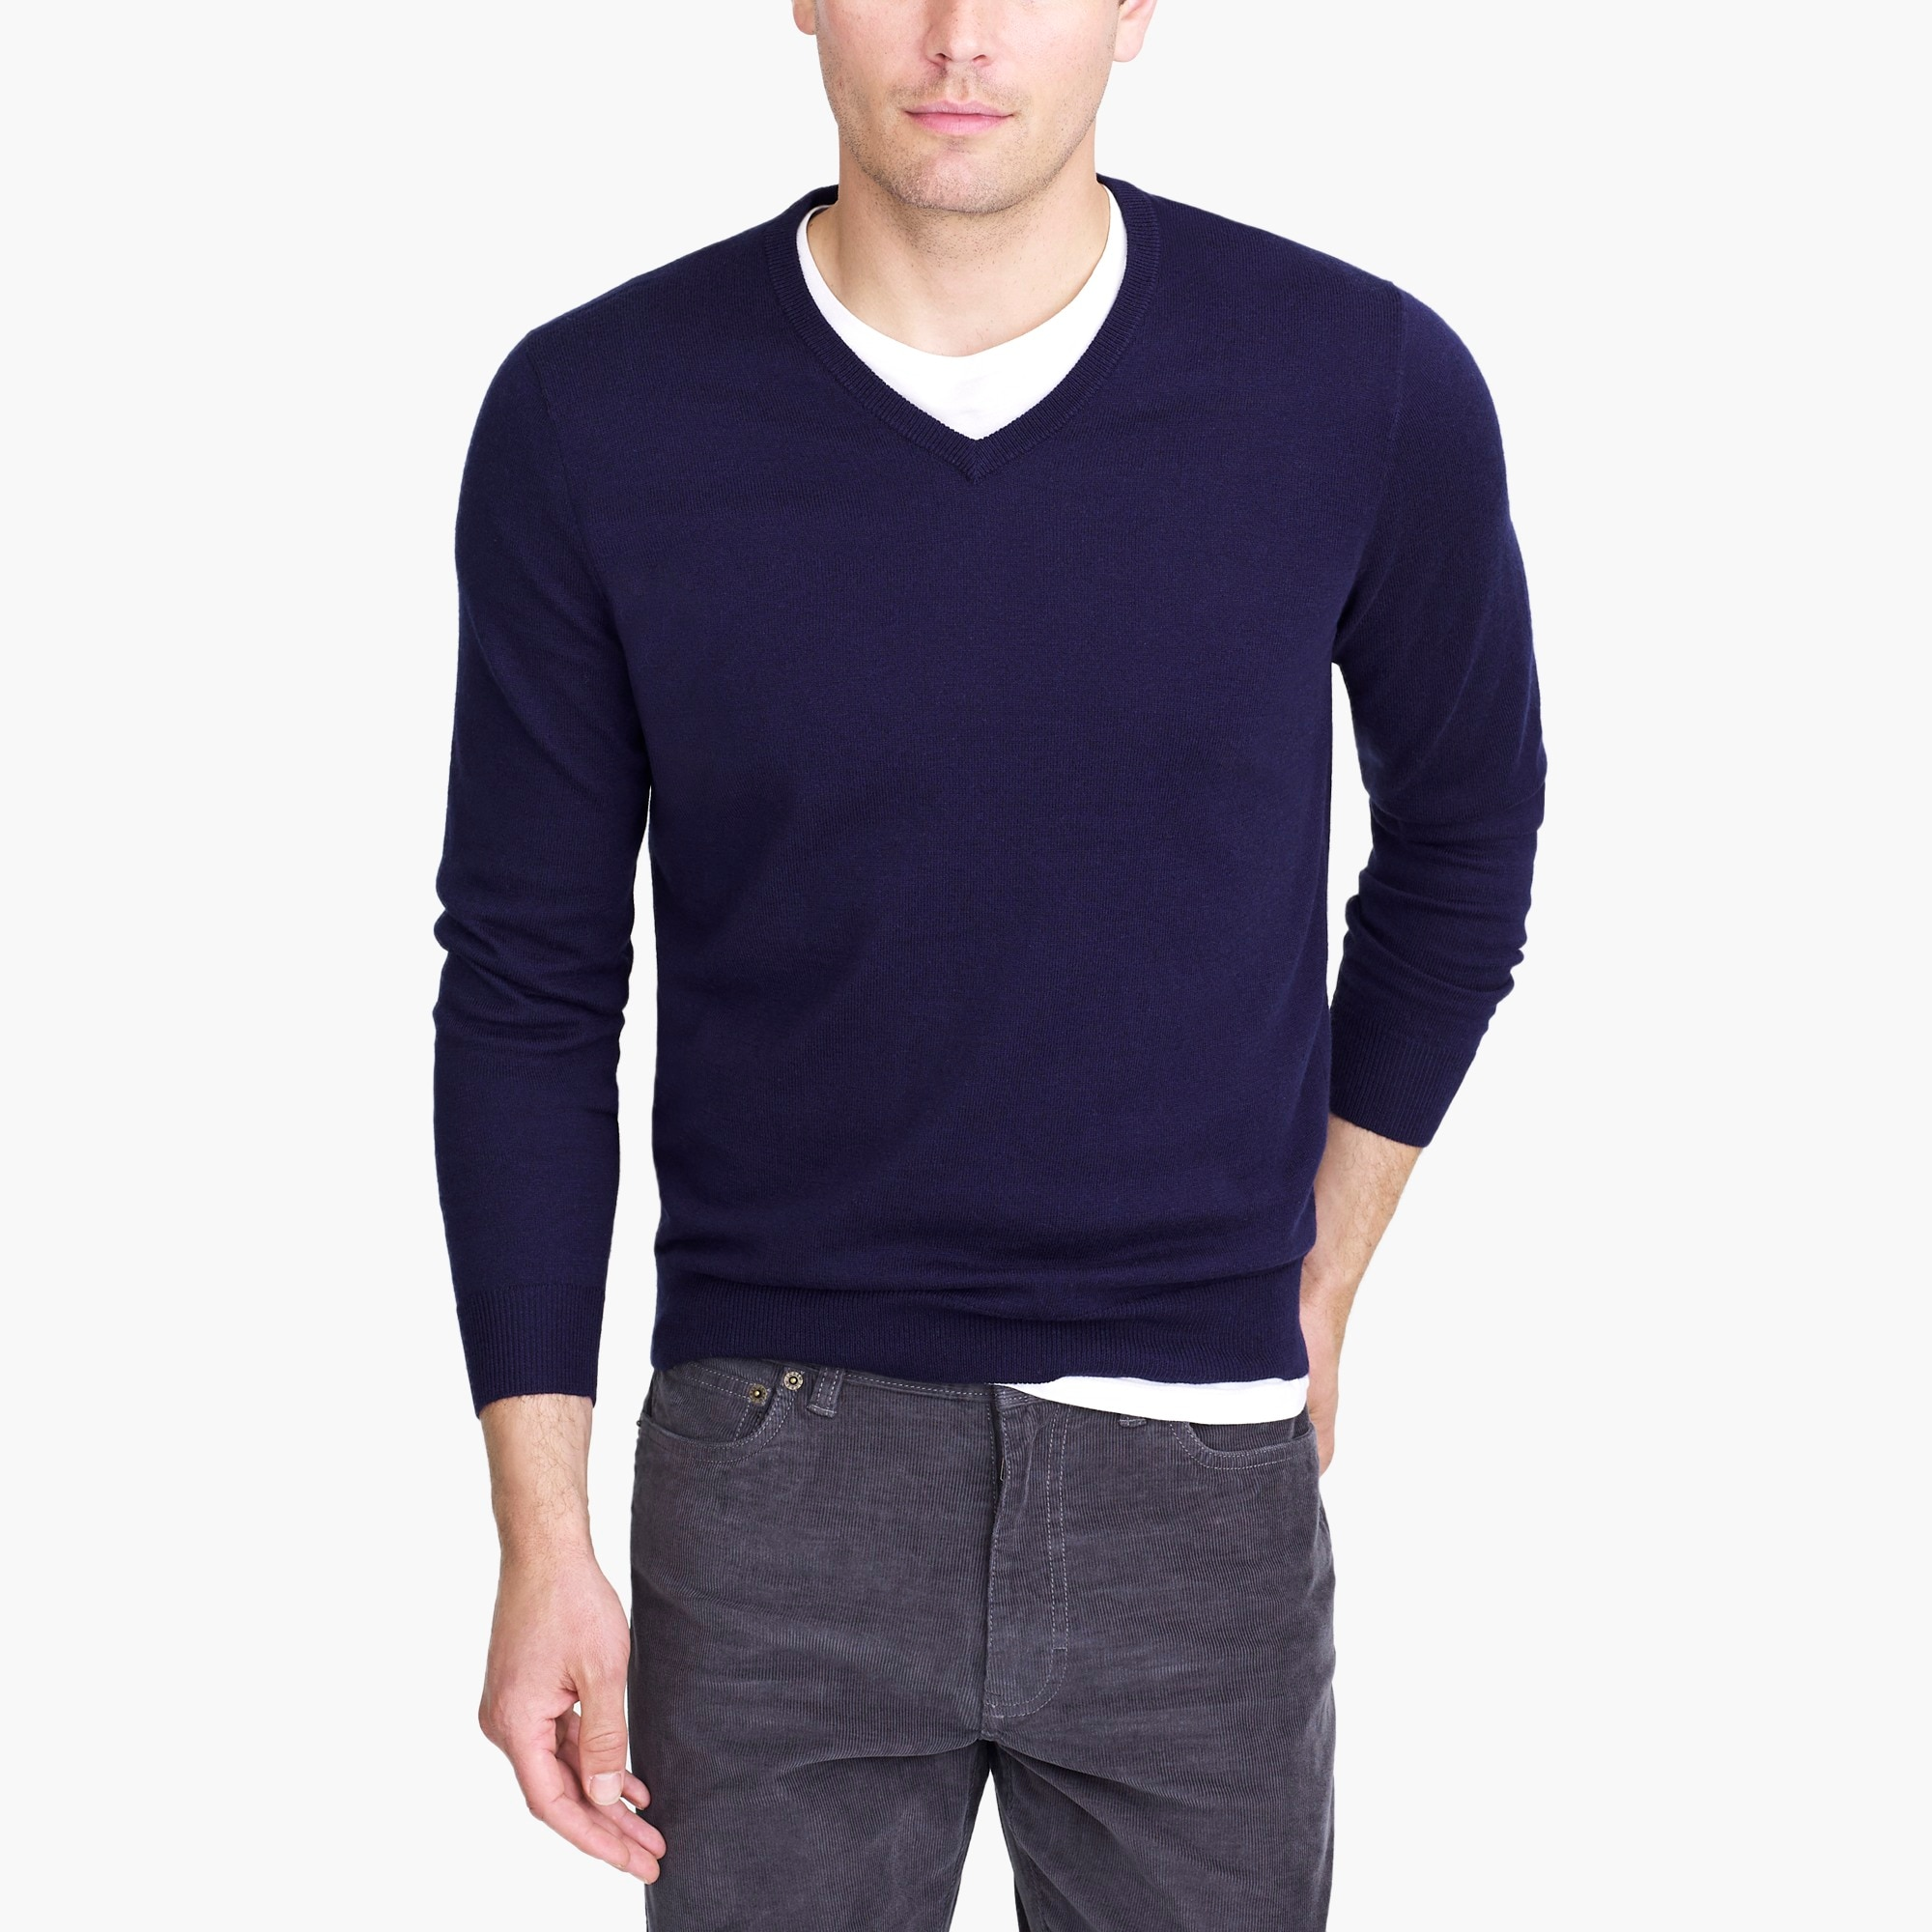 factory mens V-neck sweater in perfect merino wool blend